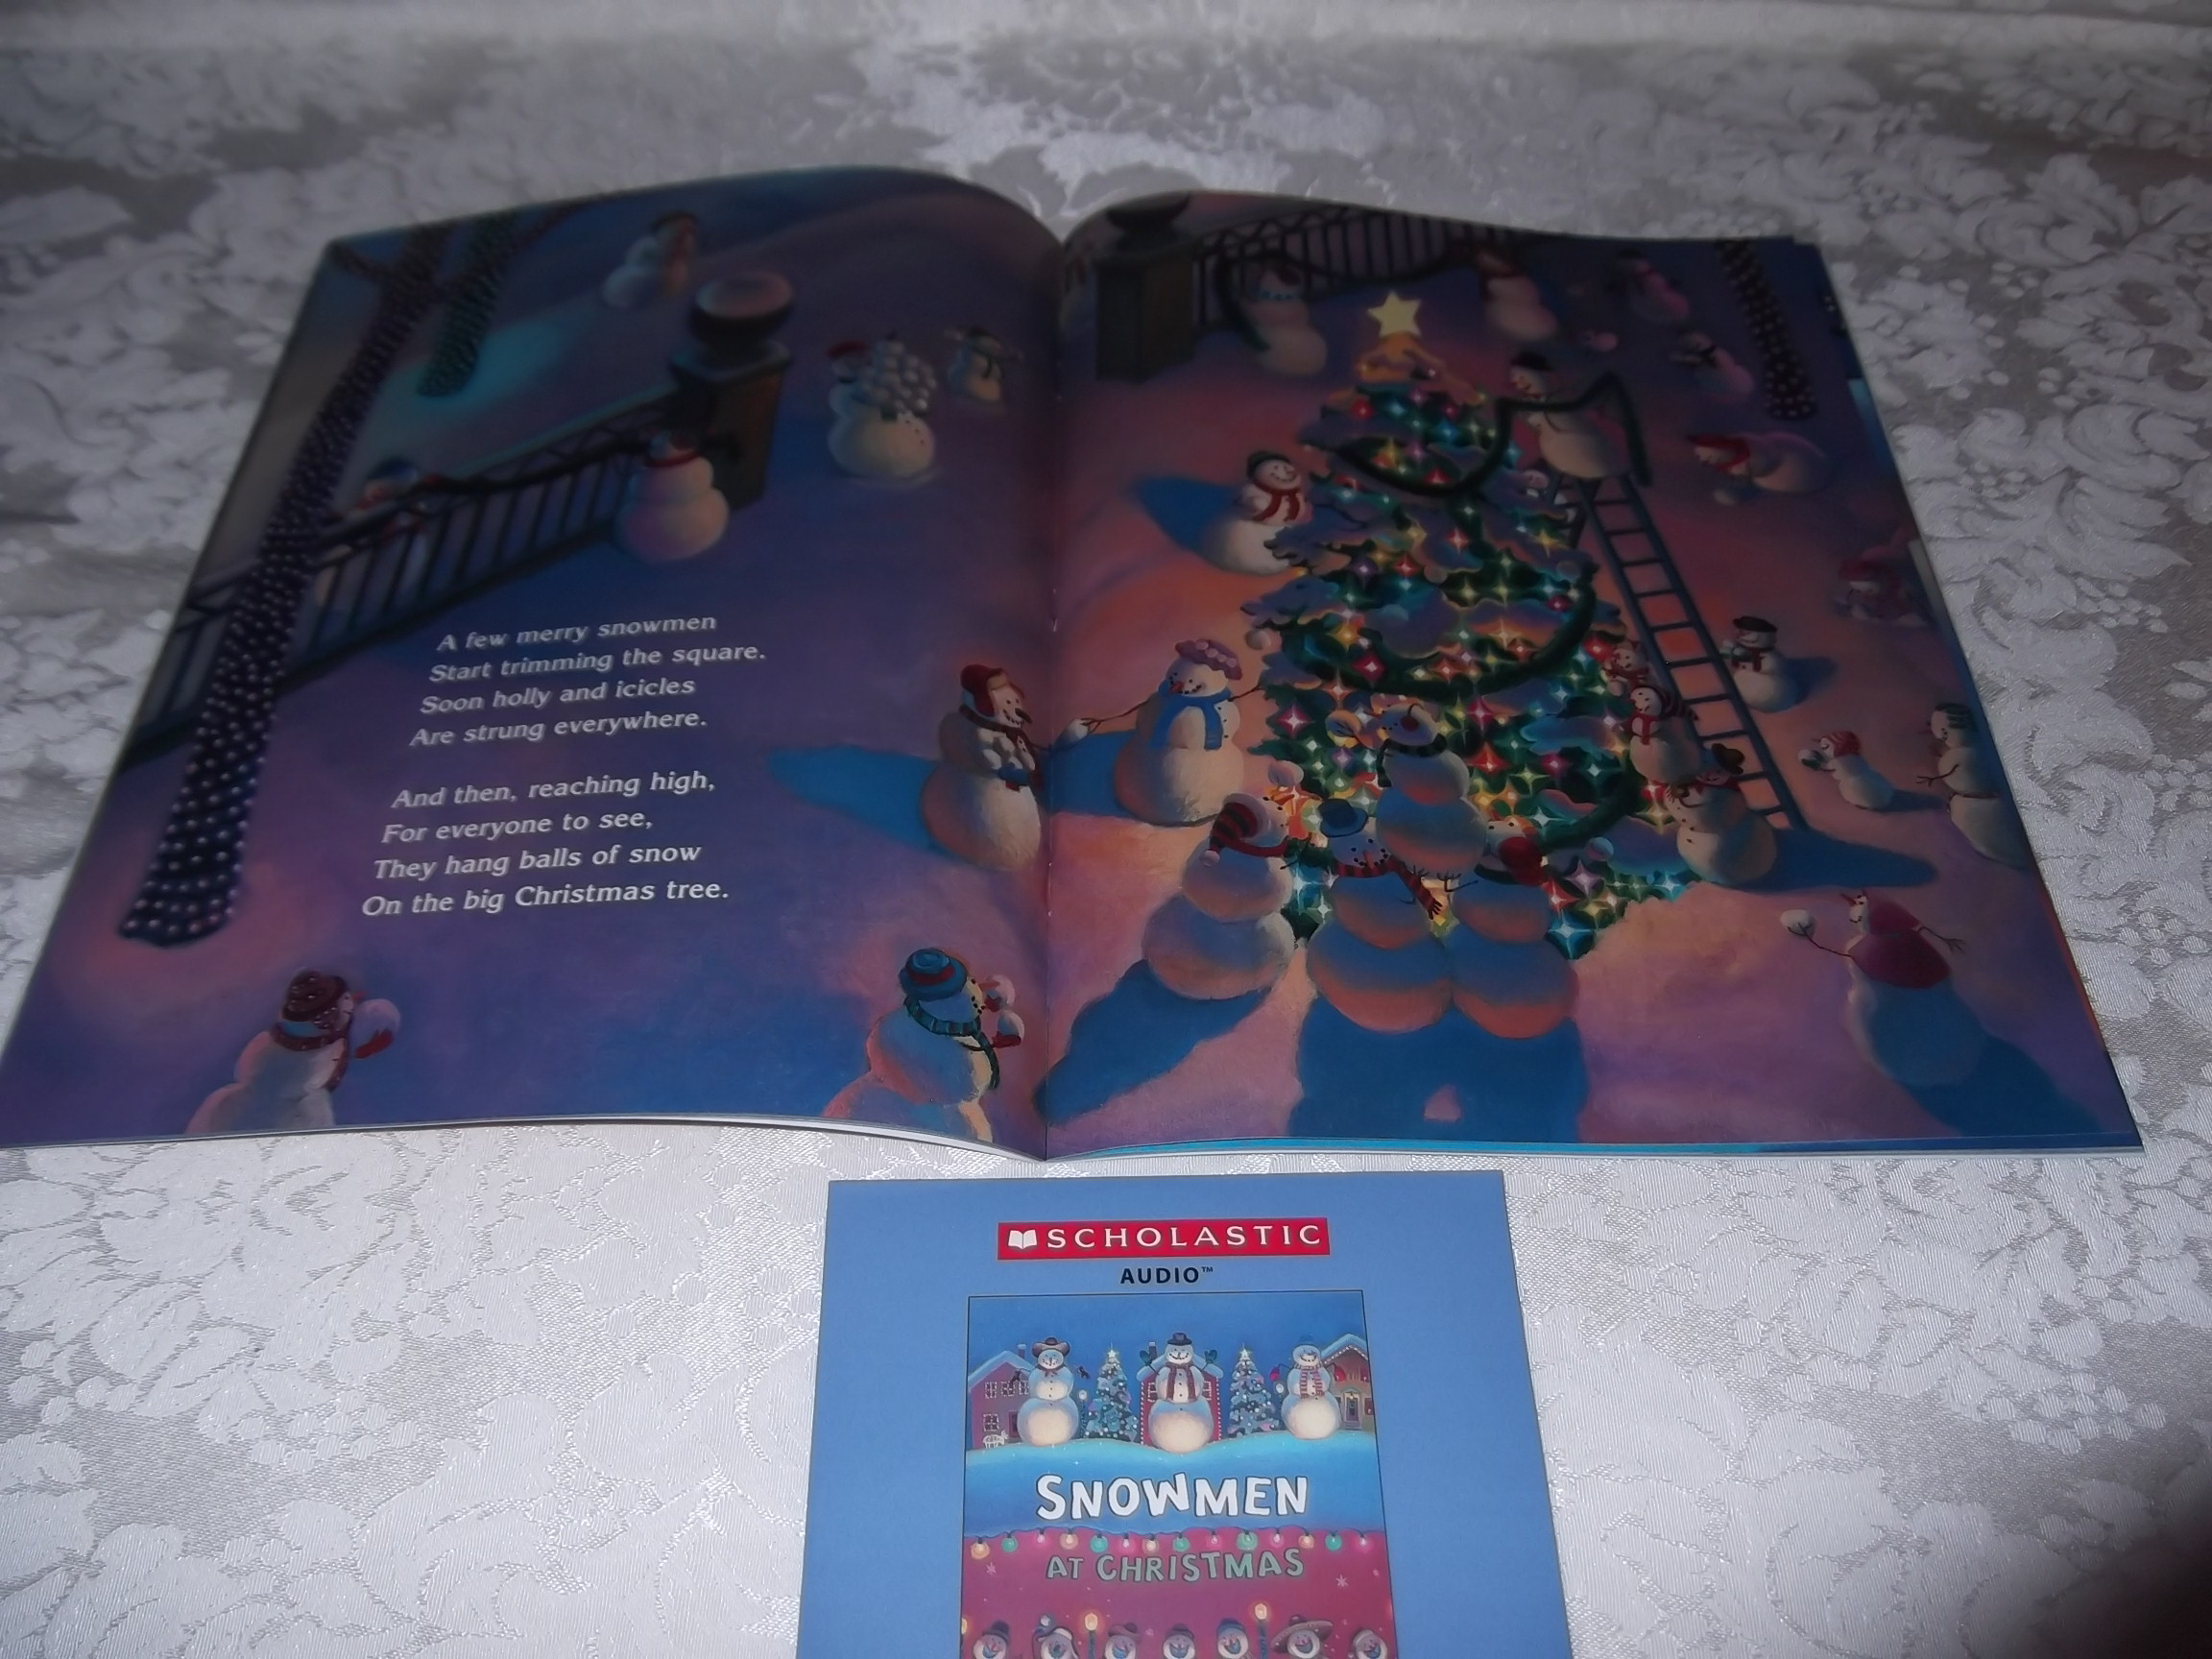 Image 2 of Snowmen At Christmas Caralyn Buehner Audio CD and SC Brand New